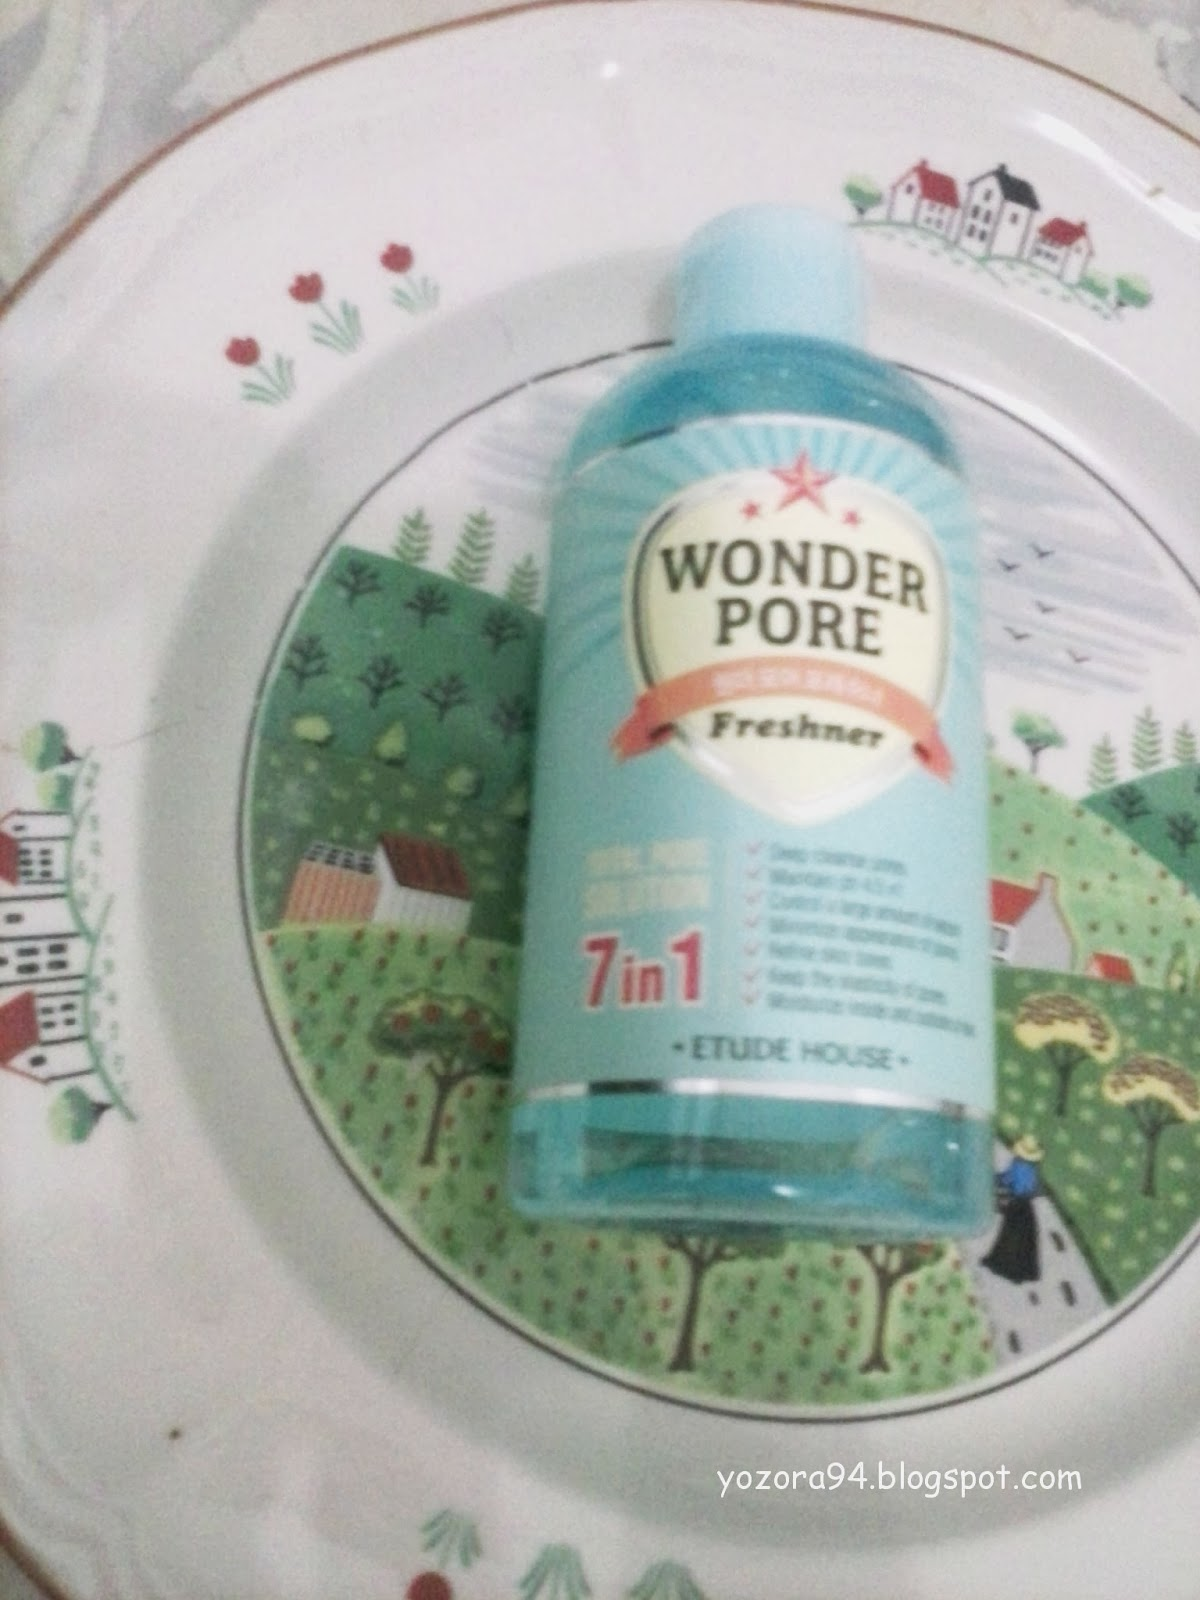 Review Etude House Wonder Pore Freshner Ells Beauty Diary 500 Ml This Toner Is 6 Free So It Doesnt Contain Parabens Mineral Oil Artificial Fragrance Pigments Talc And Animal Ingredients